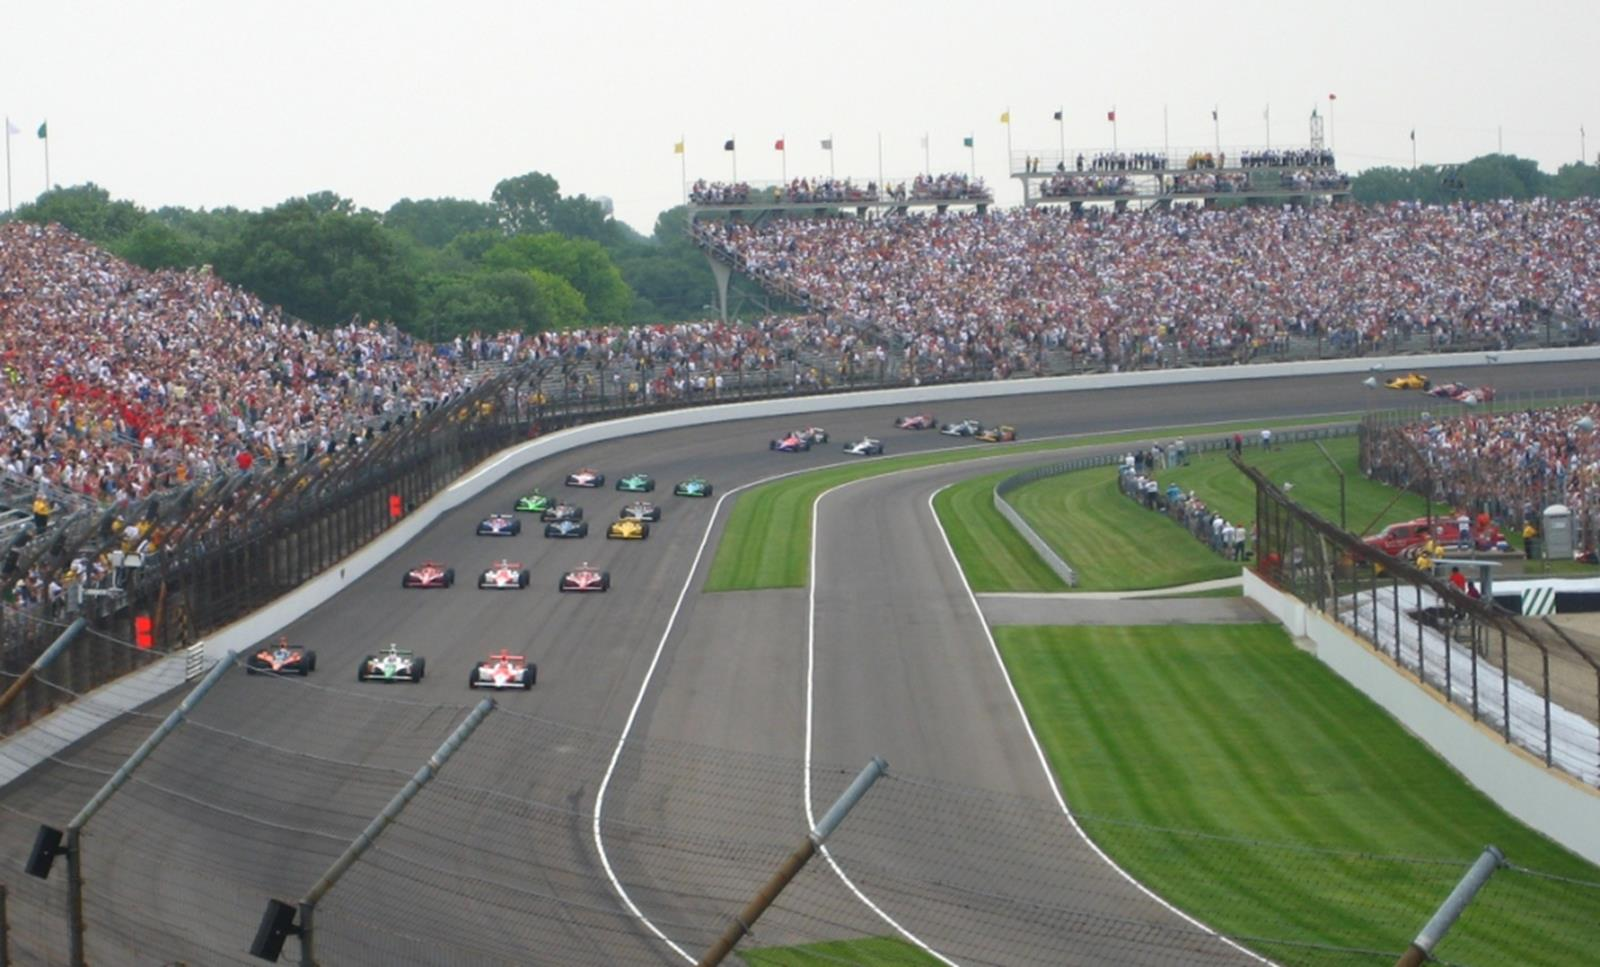 Start of Indianapolis 500. Credit The359 at en.wikipedia